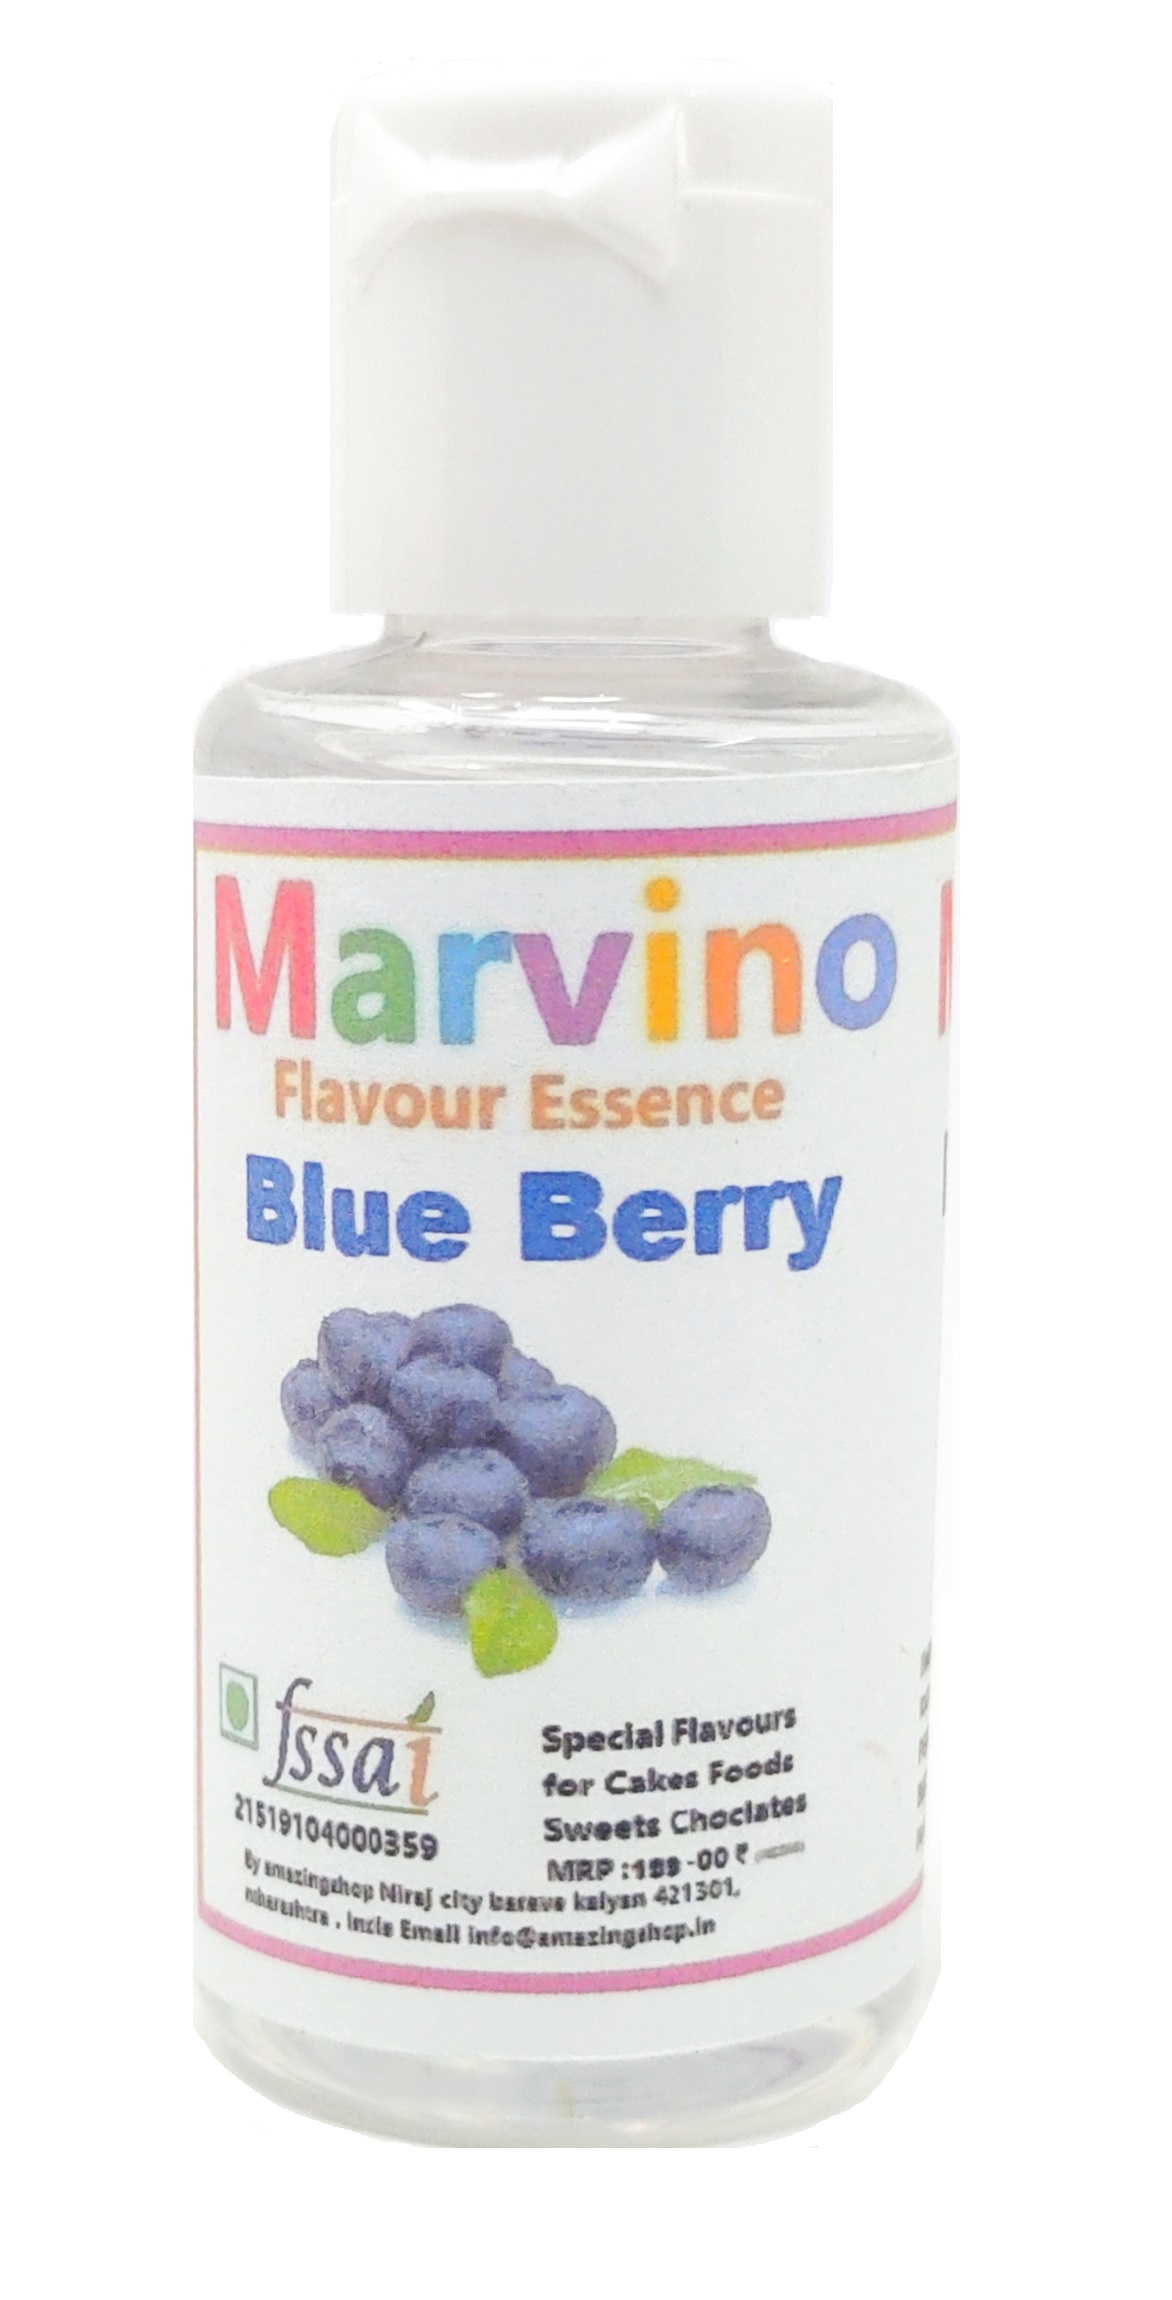 Marvino 12 Pack Of Trendy Flavour Essence Extracts For Flavouring Cakes Sweets Choclates Icecreams